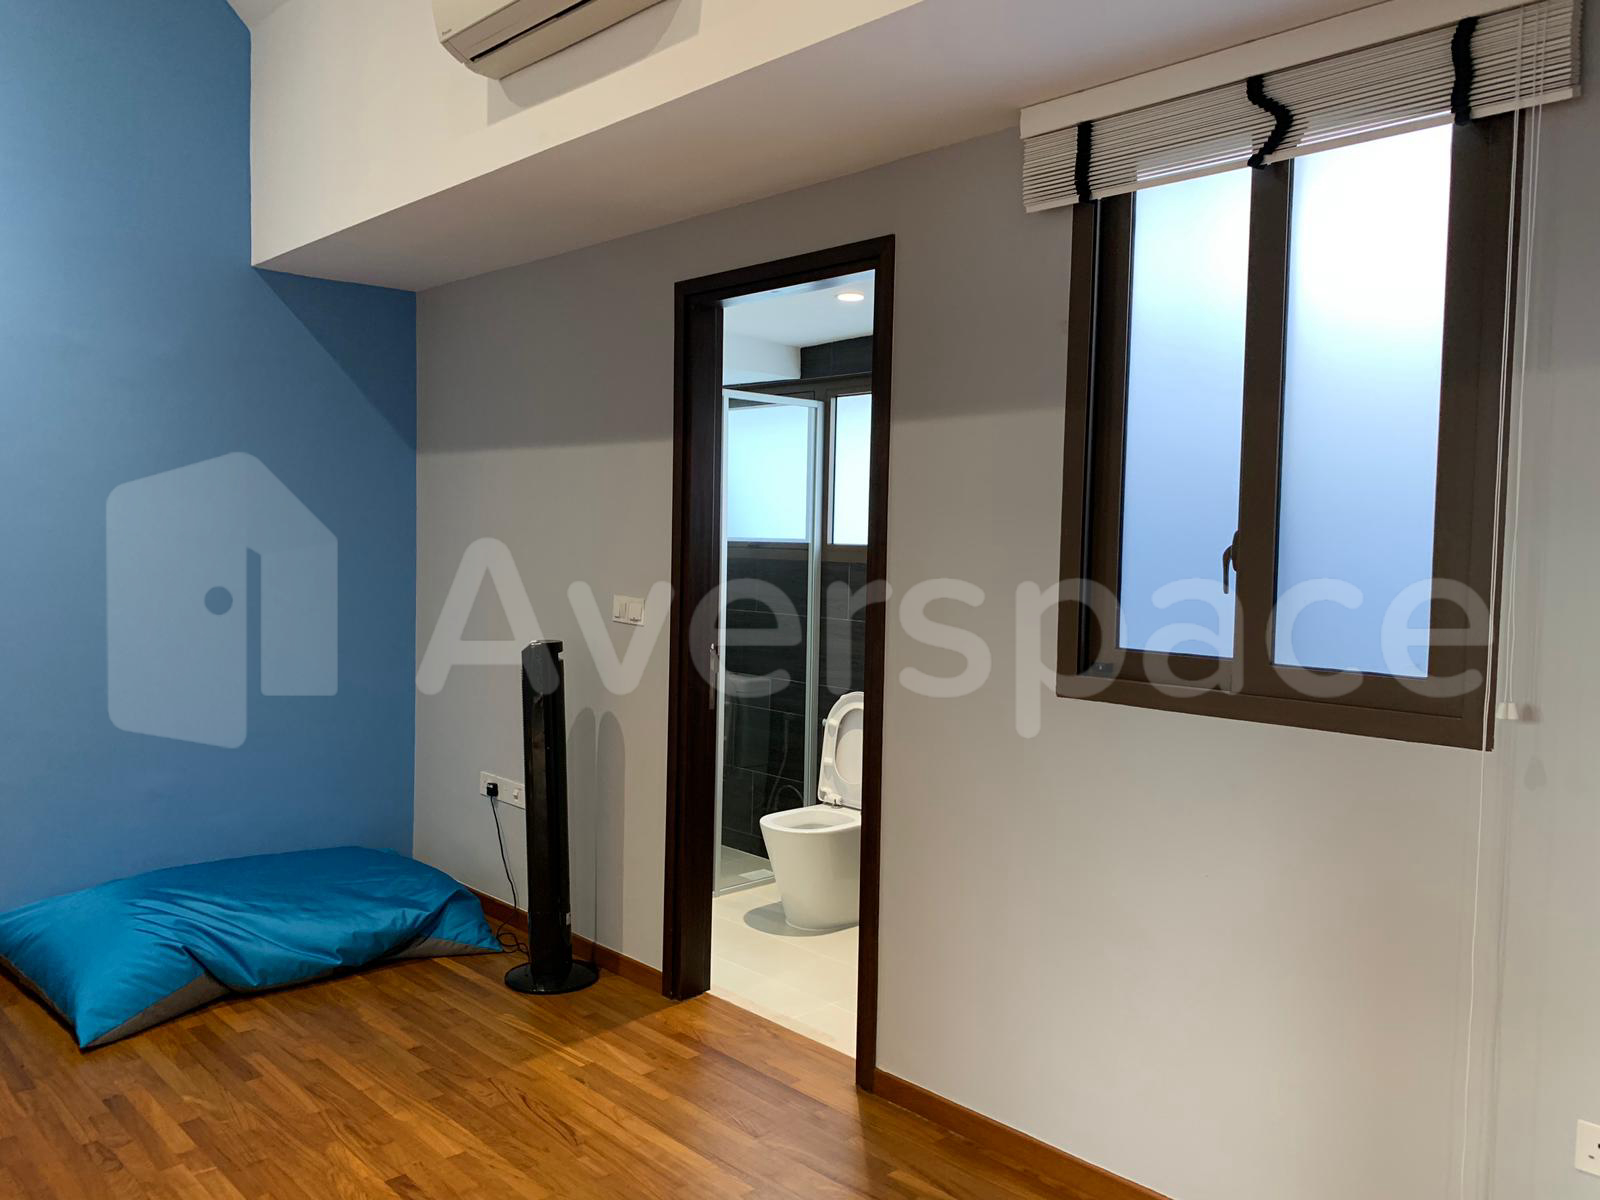 127 Springside View, District 26 Singapore